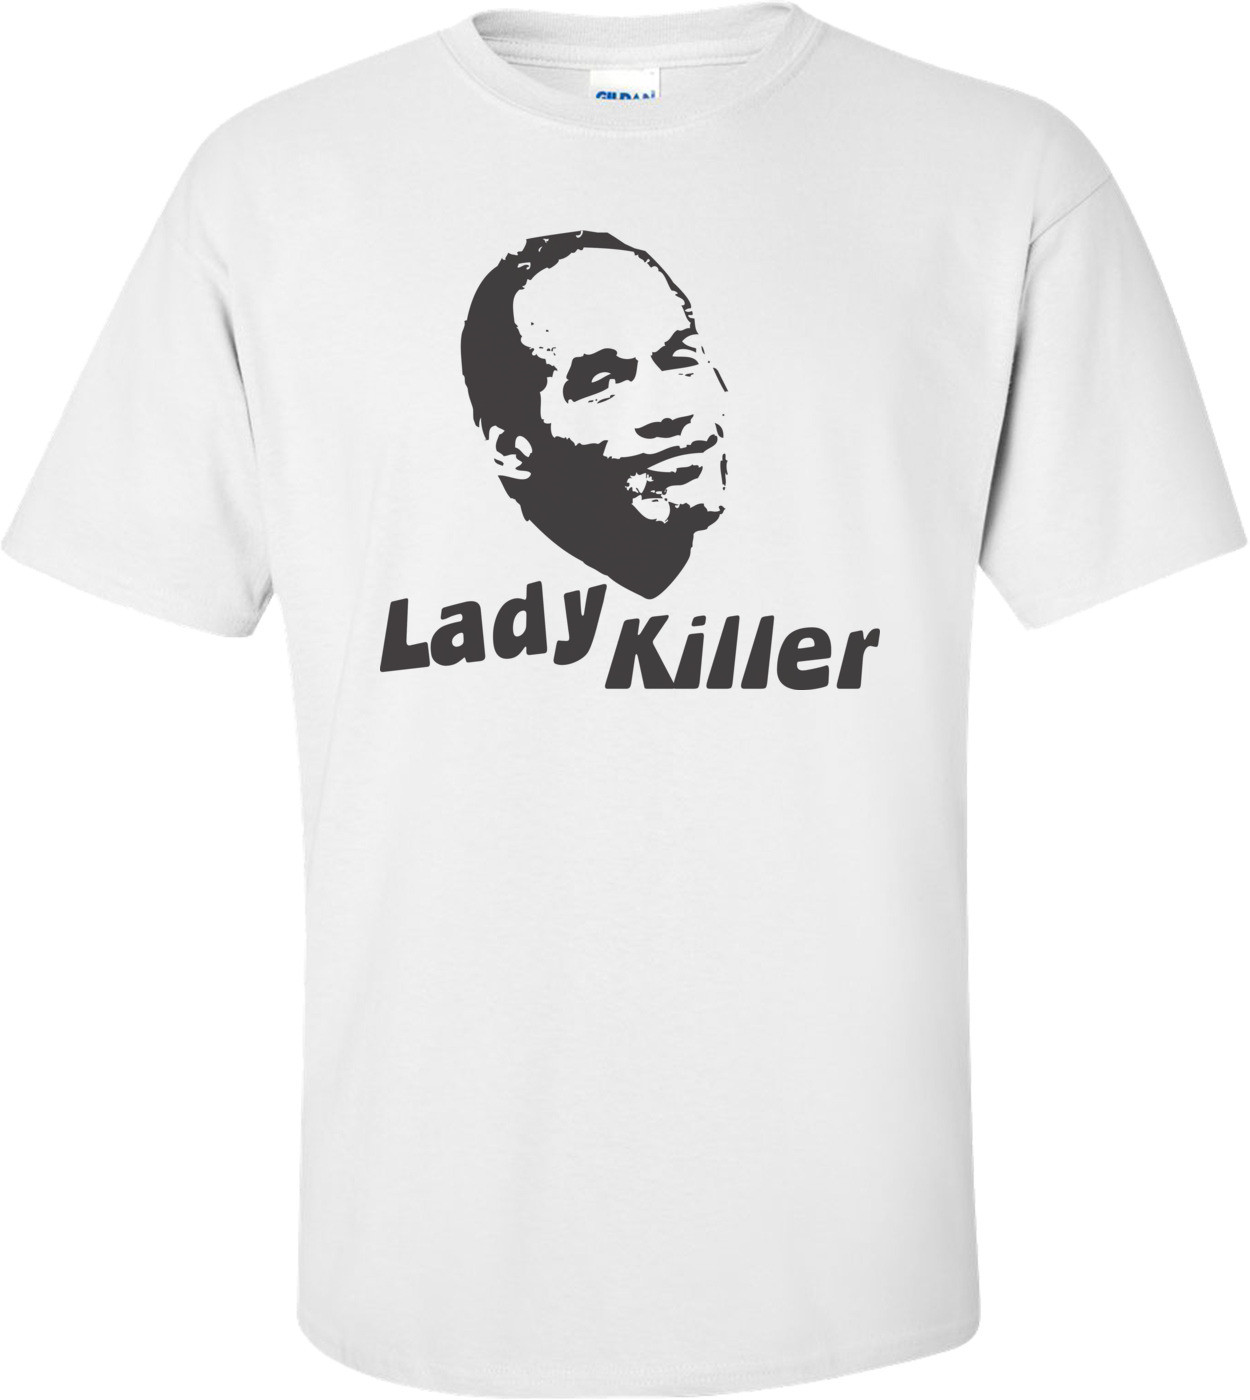 Lady Killer T-shirt